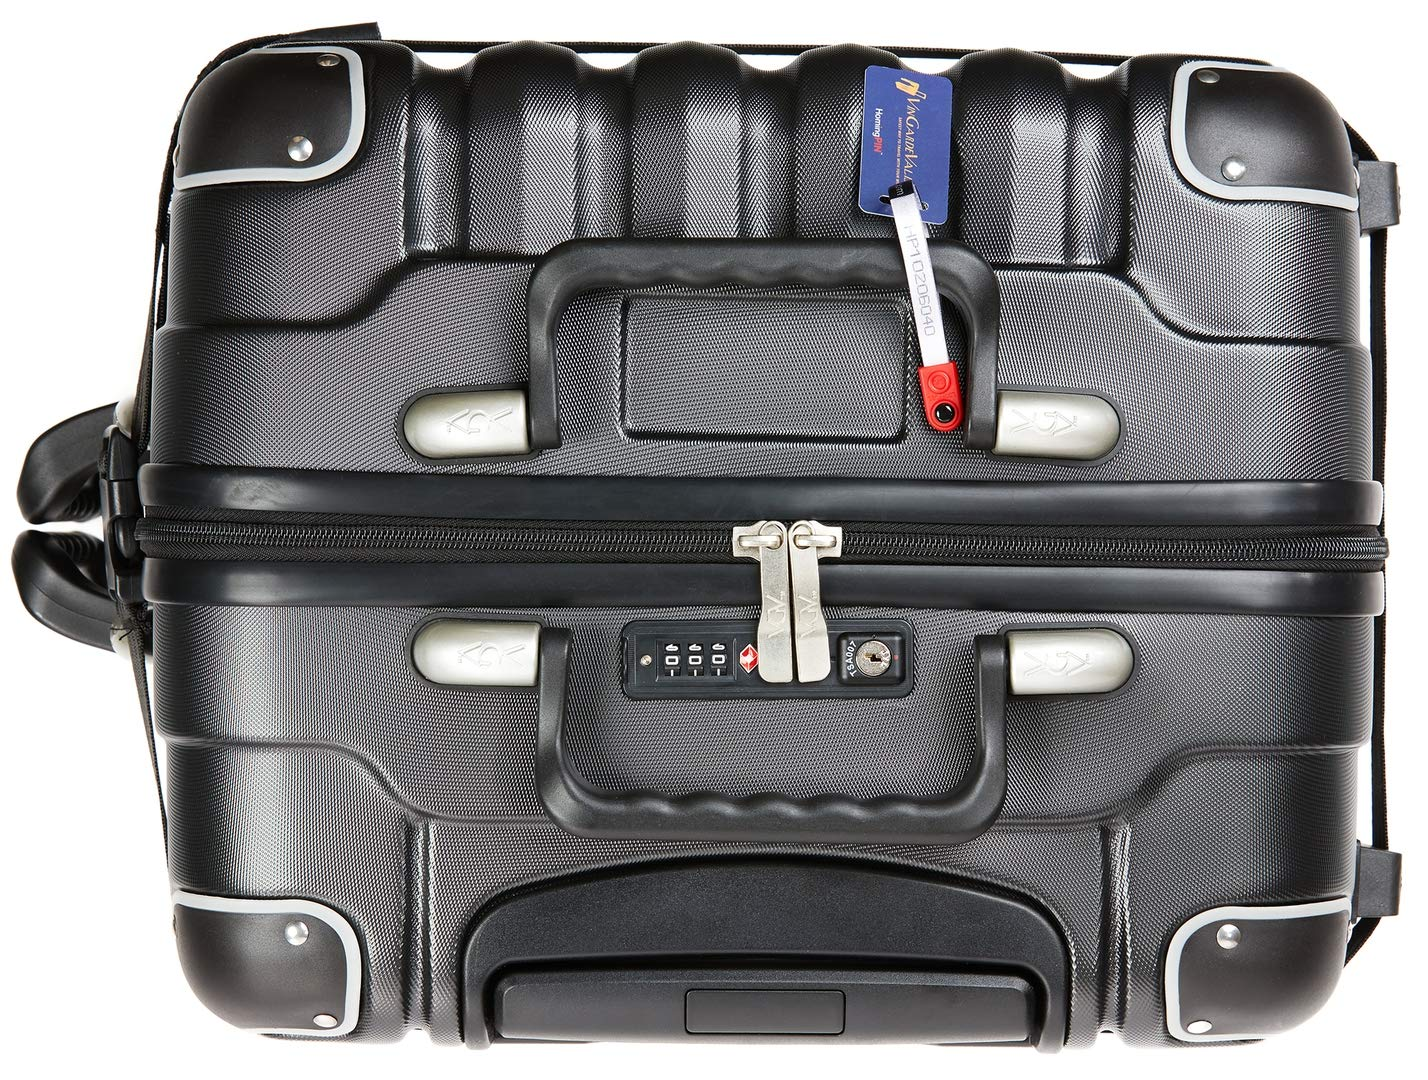 VinGardeValise - Up to 12 Bottles & All Purpose Wine Travel Suitcase (Black) by VinGardeValise (Image #6)